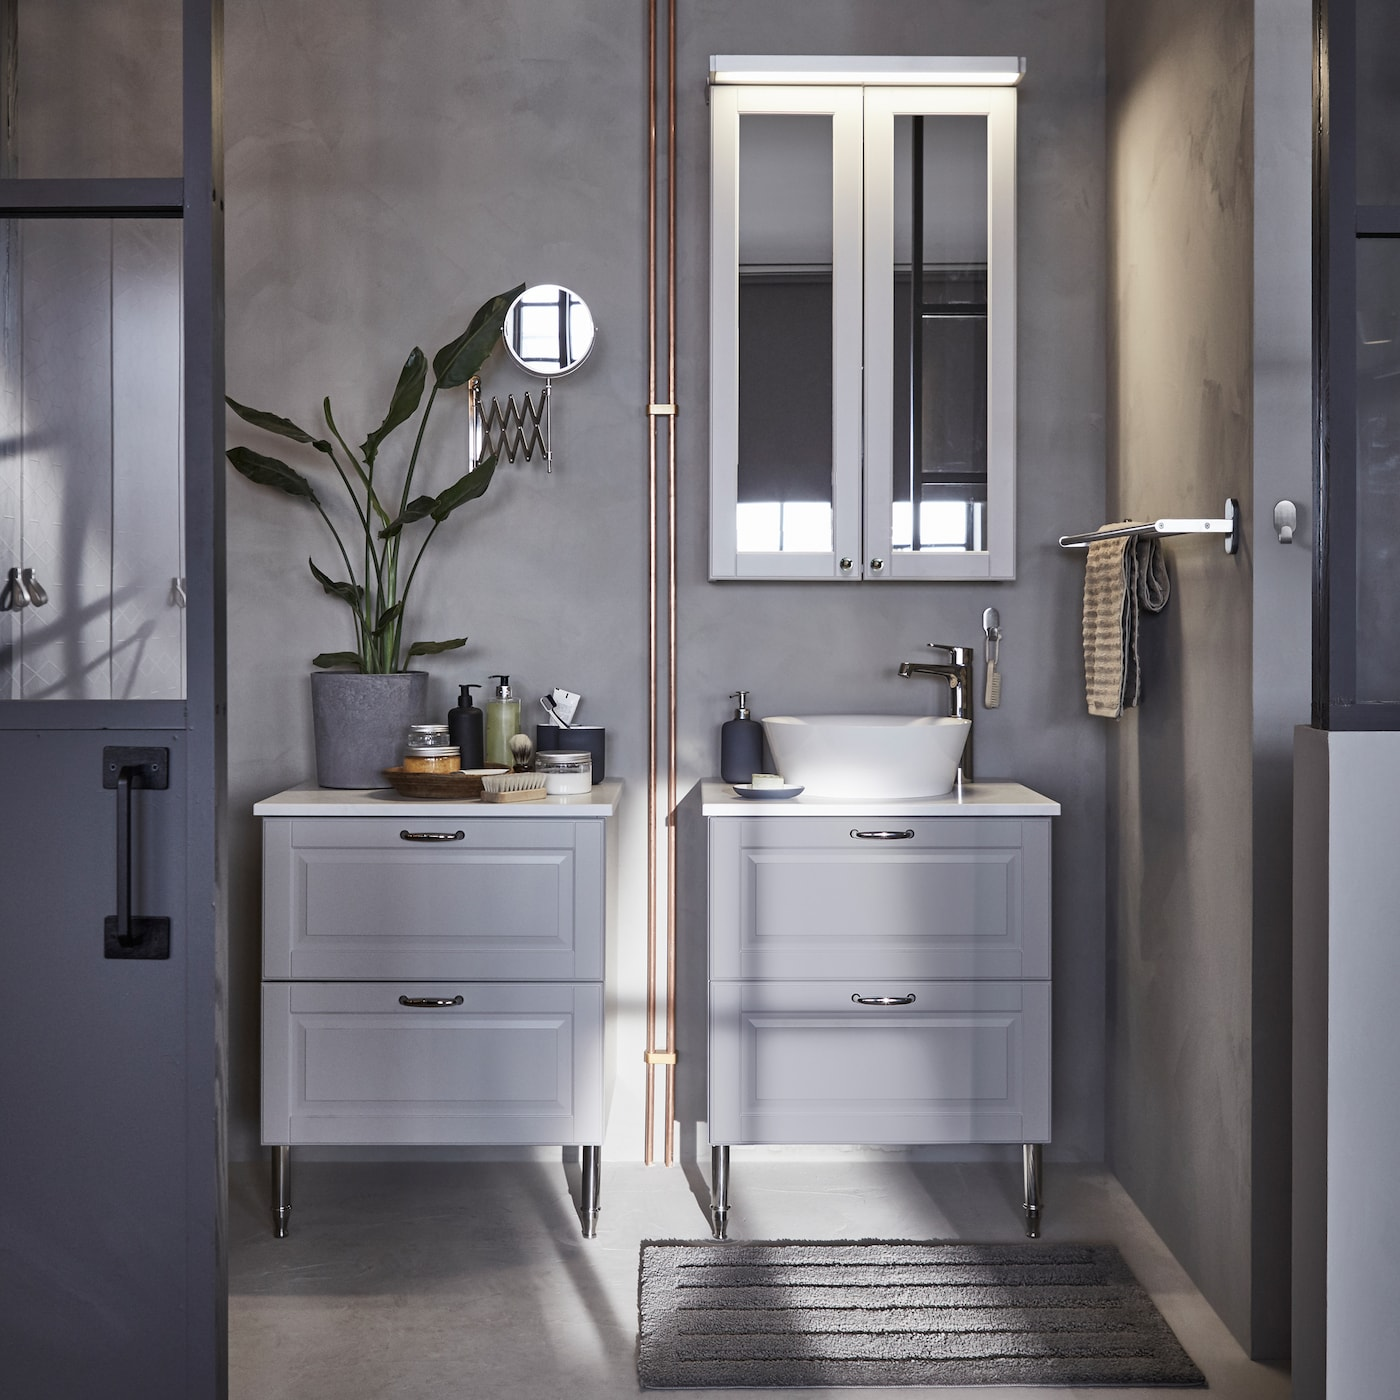 Two IKEA GODMORGON grey bathroom cabinets, each with two deep bathroom drawers and chrome-plated handles.